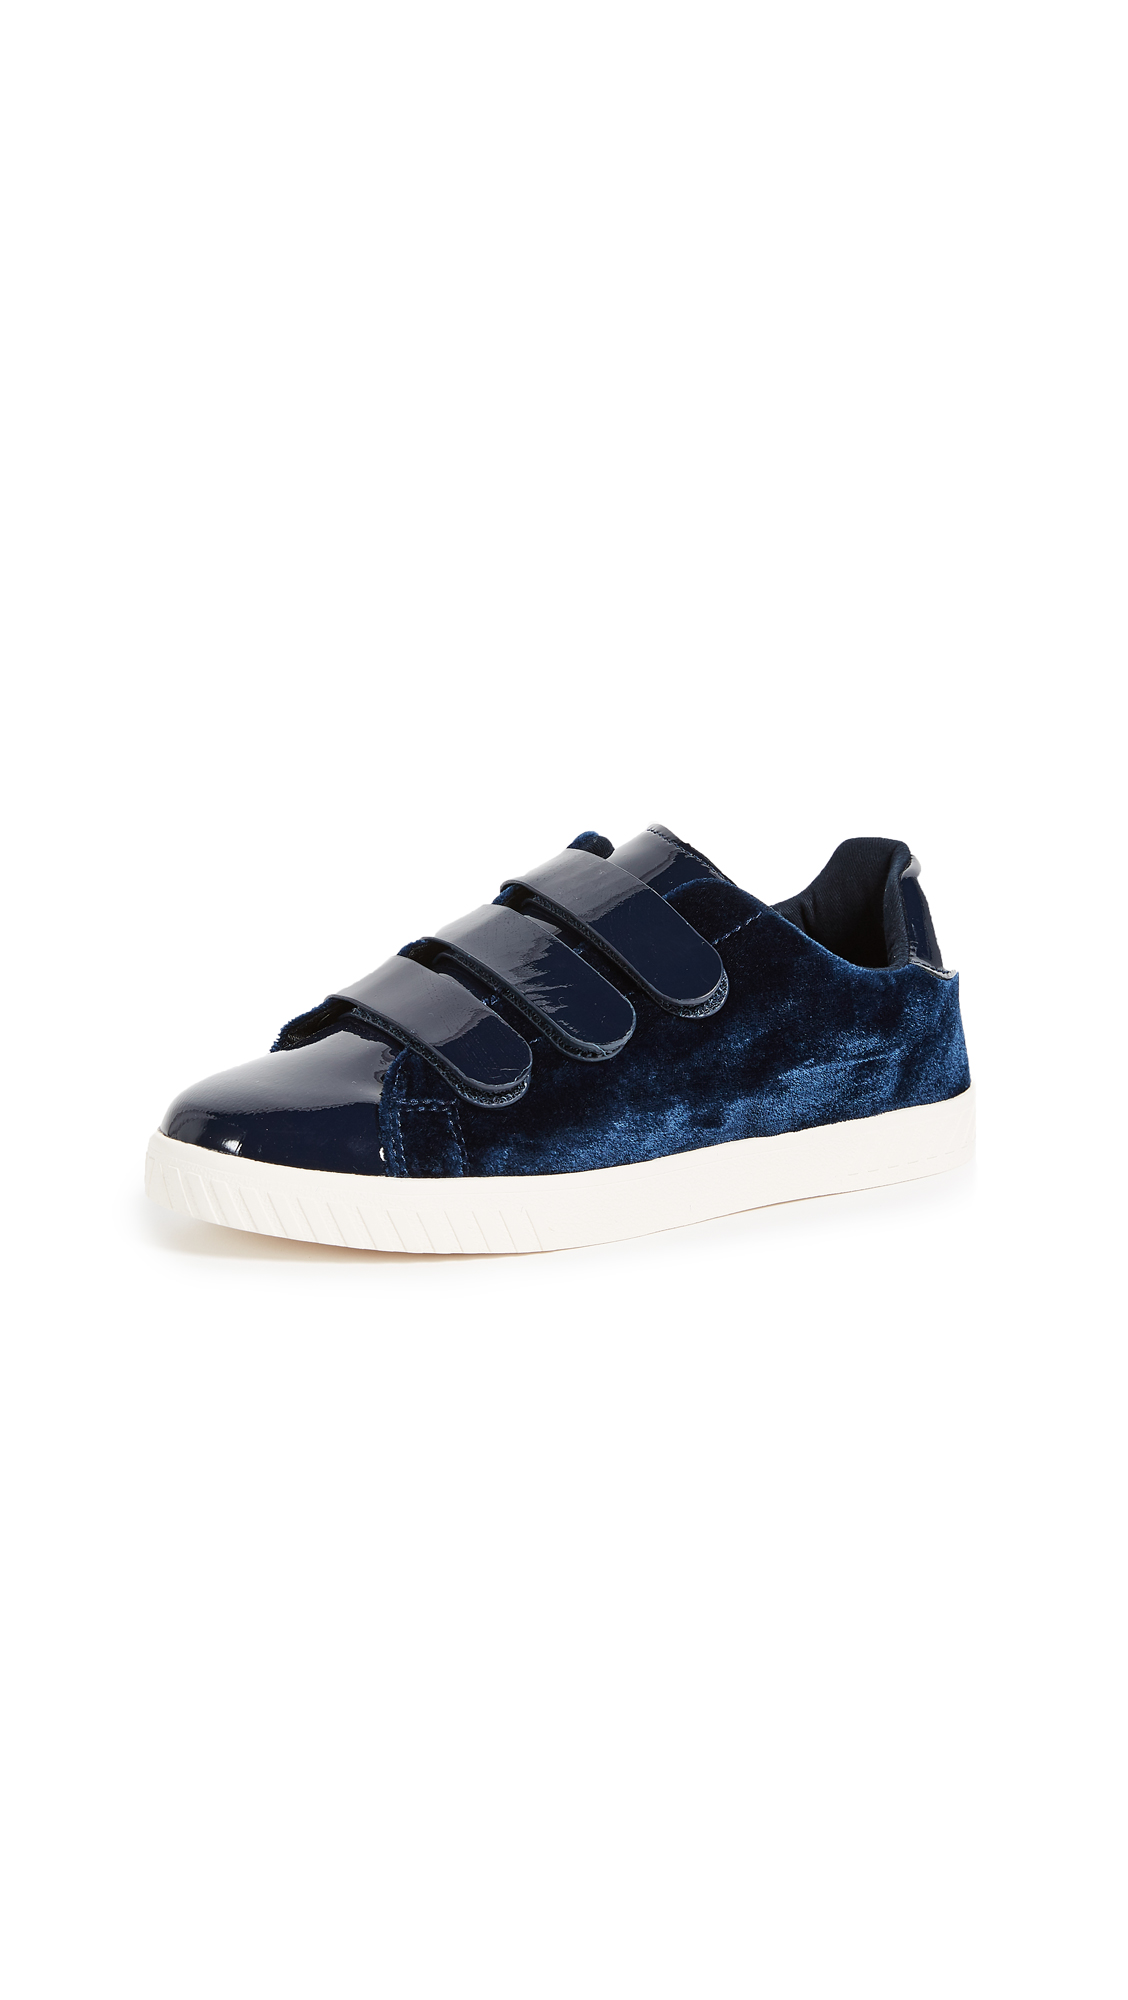 Tretorn Carry Velcro Sneakers - Bluette/Light Midnight